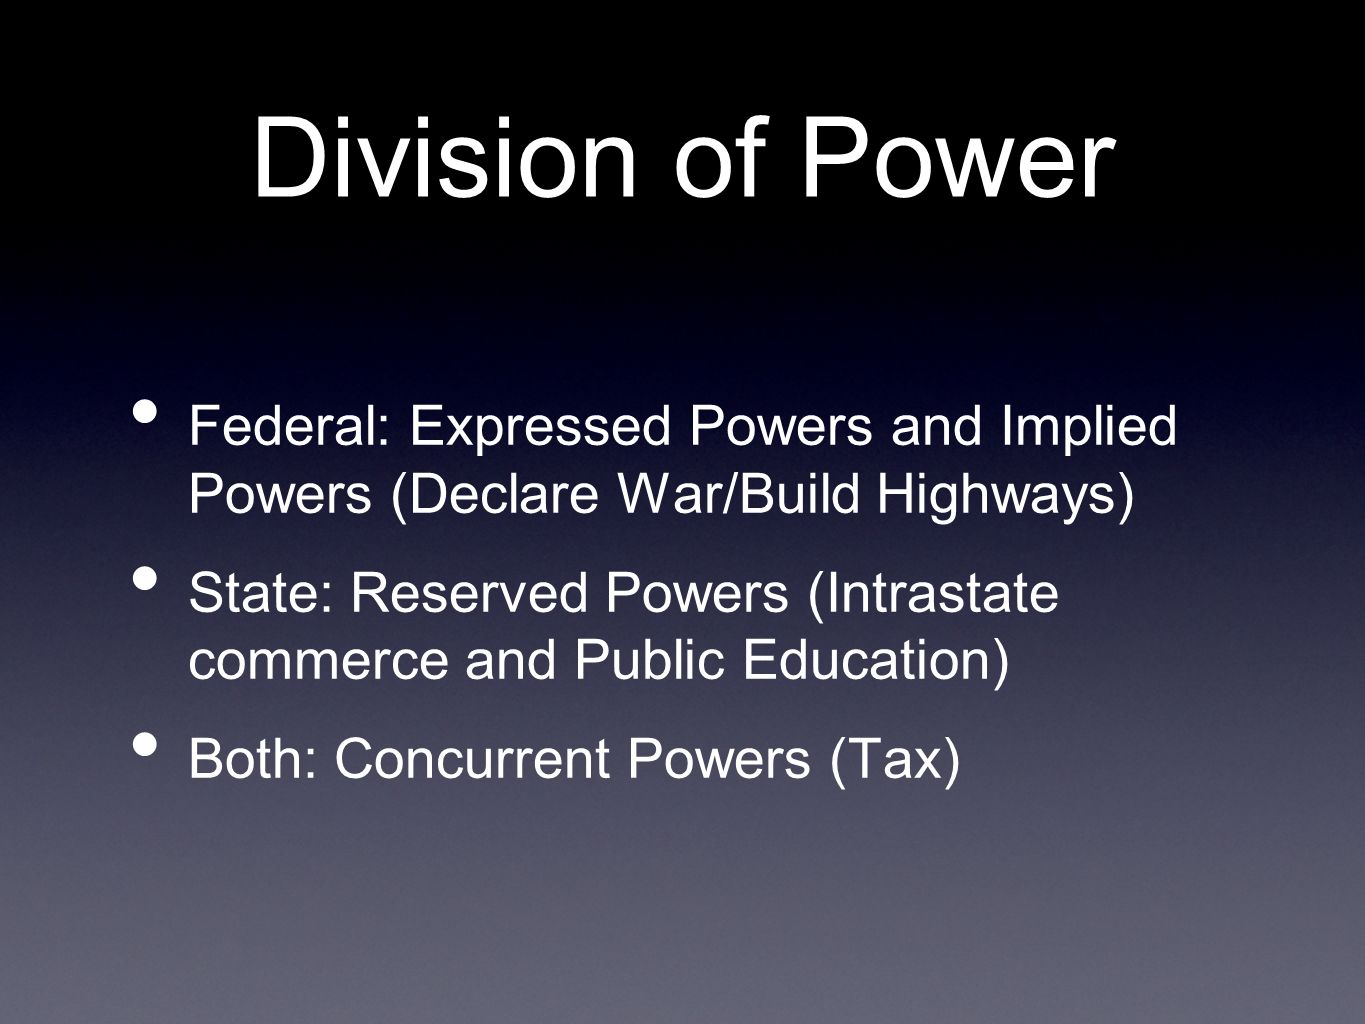 Division of Power Federal: Expressed Powers and Implied Powers (Declare War/Build Highways) State: Reserved Powers (Intrastate commerce and Public Education) Both: Concurrent Powers (Tax)